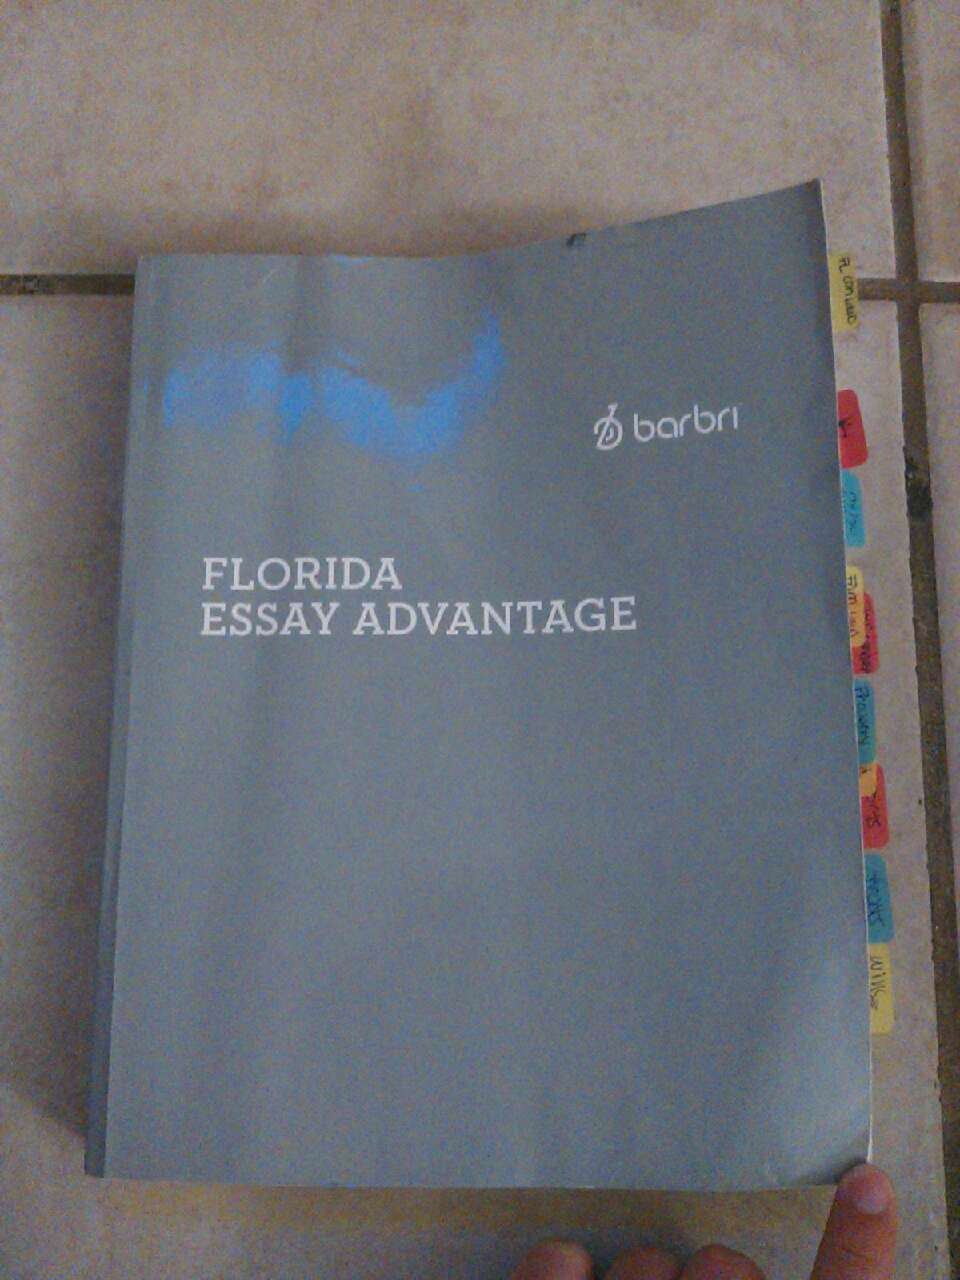 florida essay advantage book  florida essay advantage book